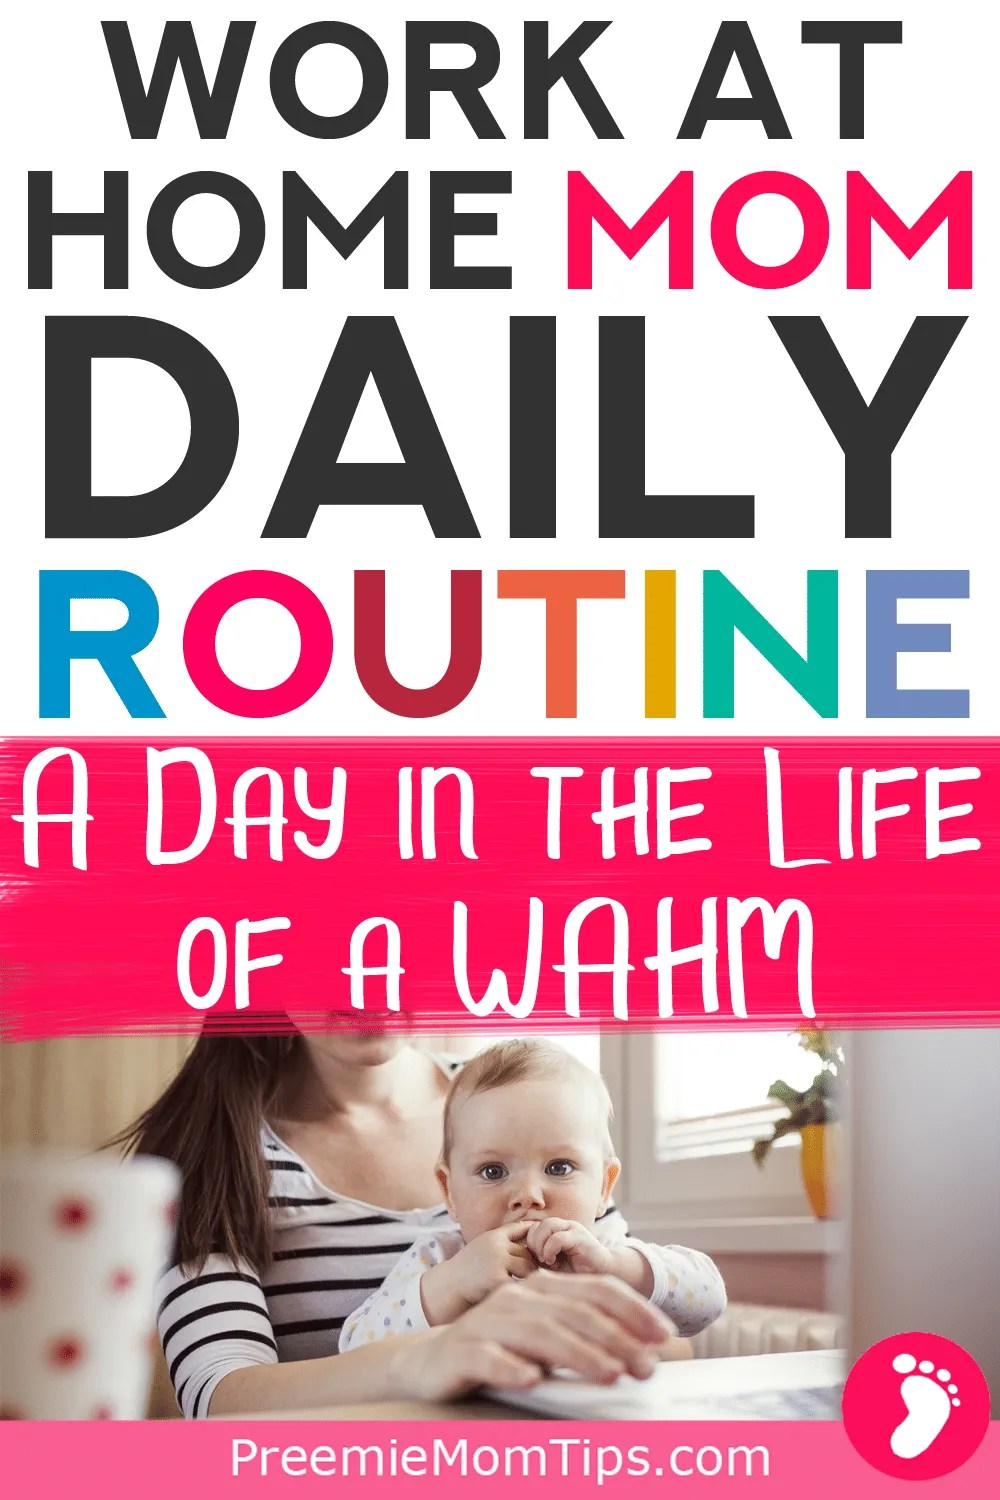 Are you wondering about becoming a work at home mom? Take a look at my WAHM routine, this is how I manage my time as a work at home mom with a toddler! #WAHM #workathomemom #mom #SAHM